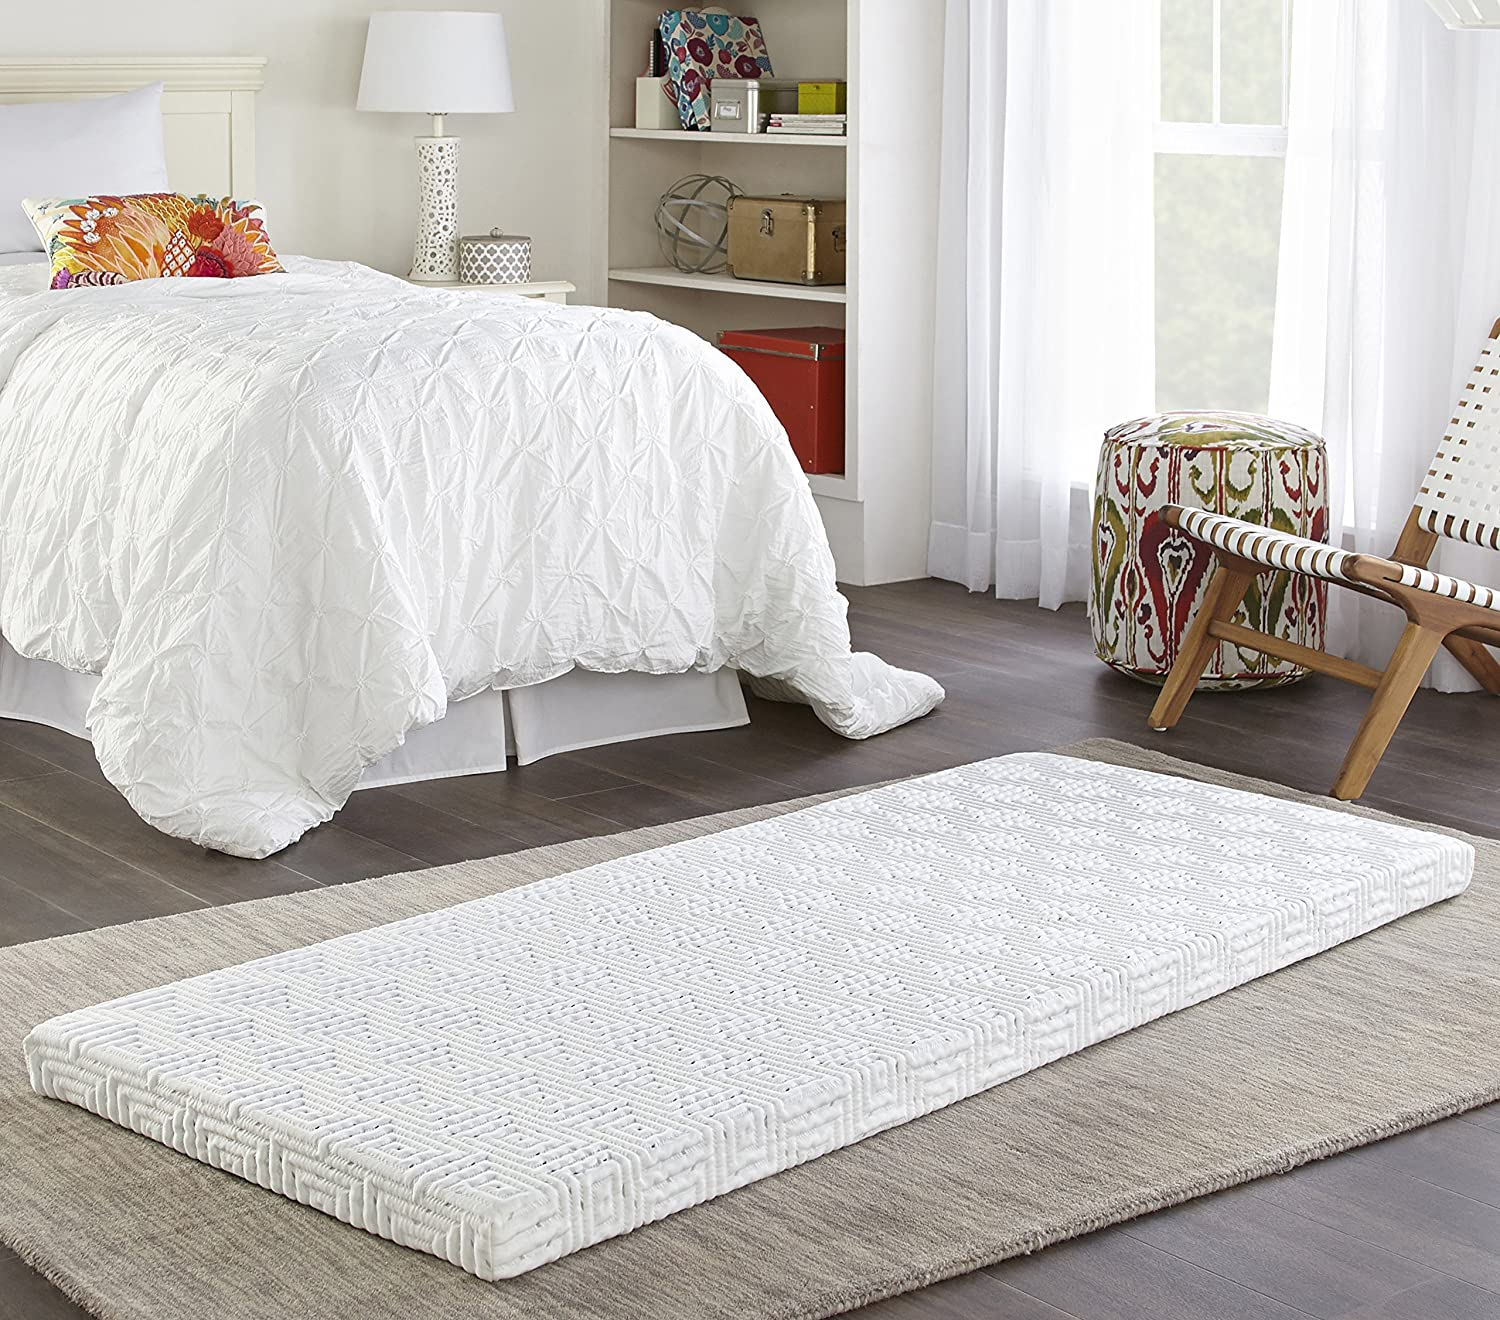 Broyhill Roll and Store Memory Foam Mattress  Roll-Up Guest Bed Floor Mat, 3  Twin